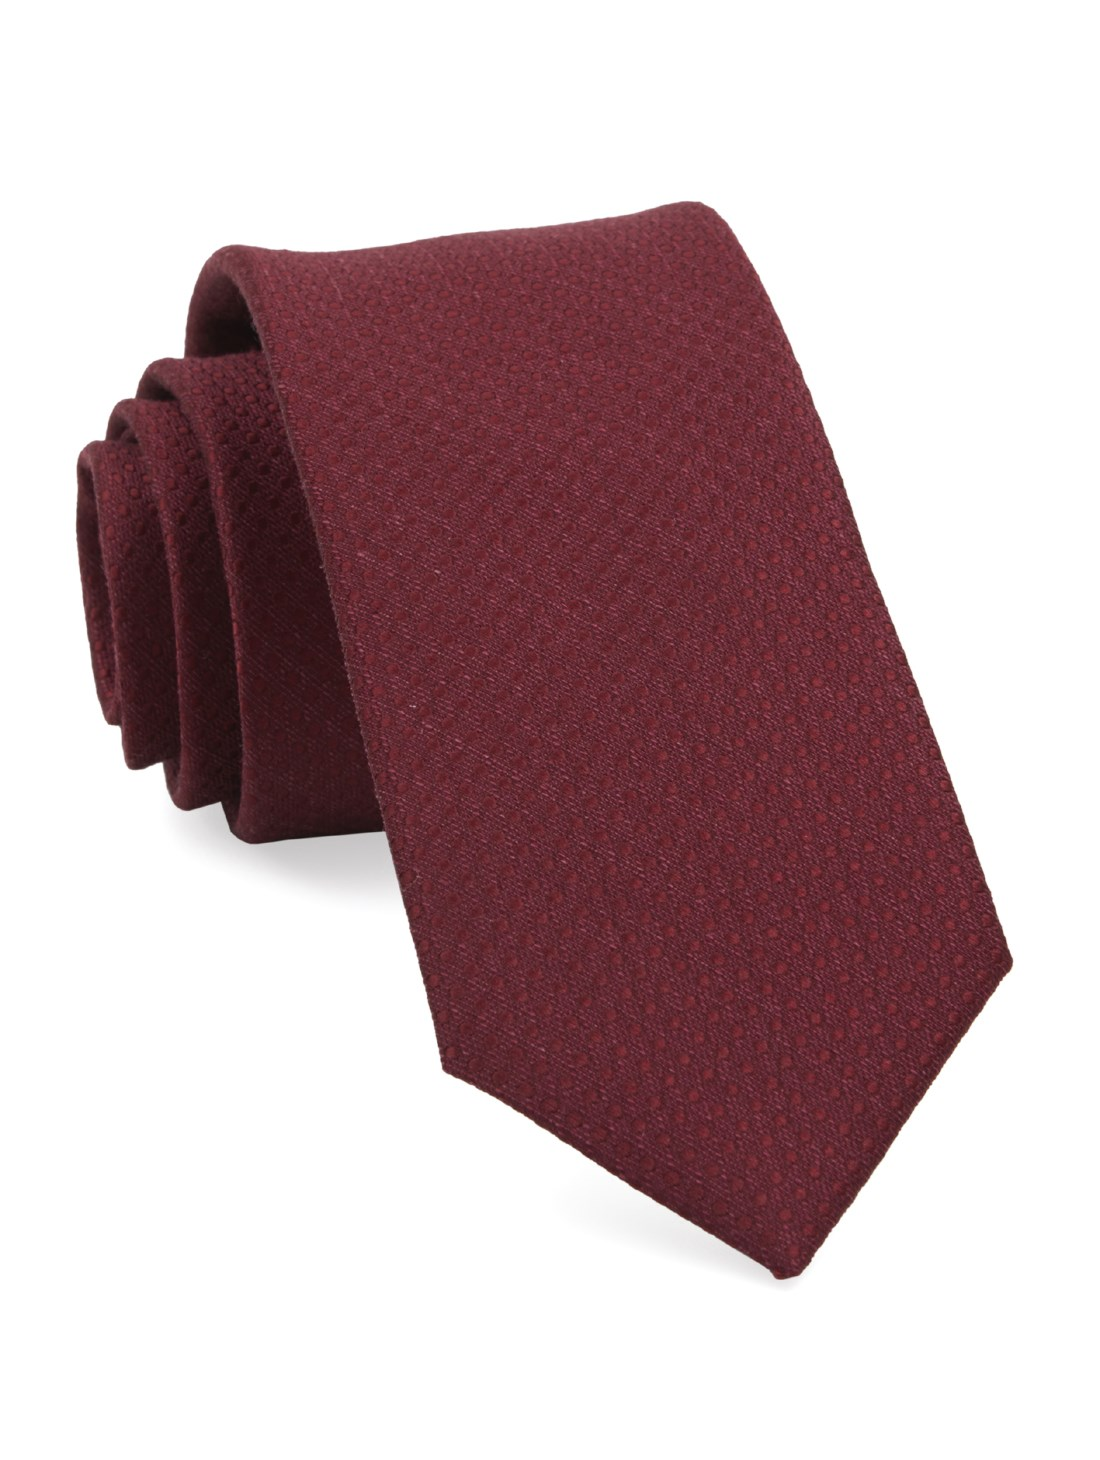 "Dotted Spin - Burgundy - 2.5"" x 58"" - Ties"